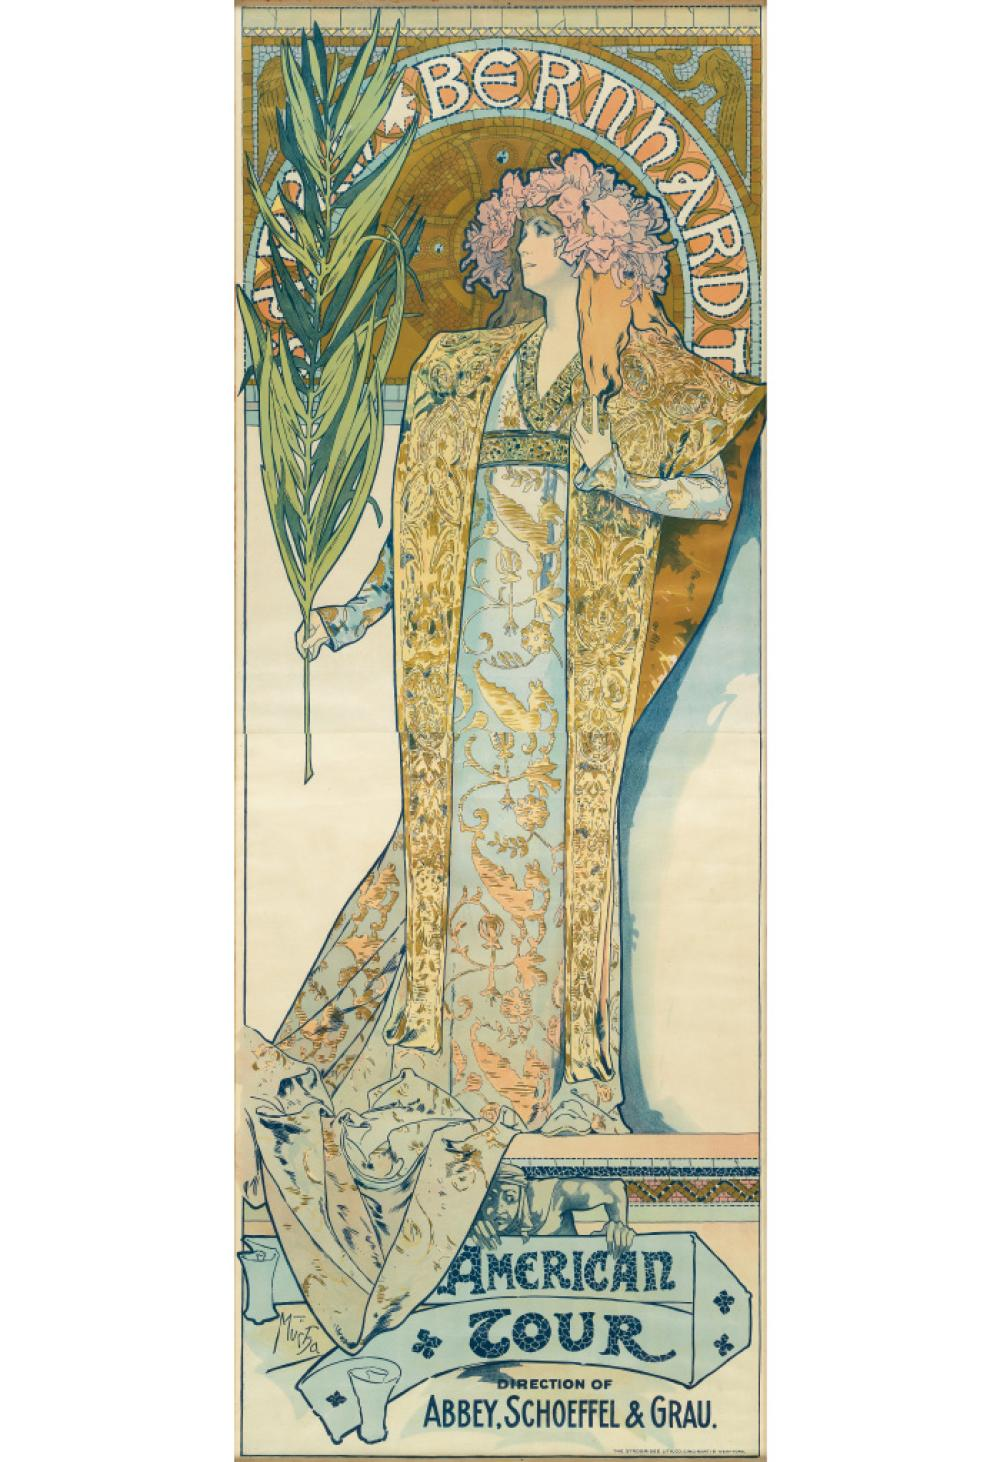 ALPHONSE MUCHA (1860-1939). SARAH BERNHARDT / AMERICAN TOUR. 1896. 75x27 inches, 191x70 cm. The Strobridge Lith, Co., Cincinnati.